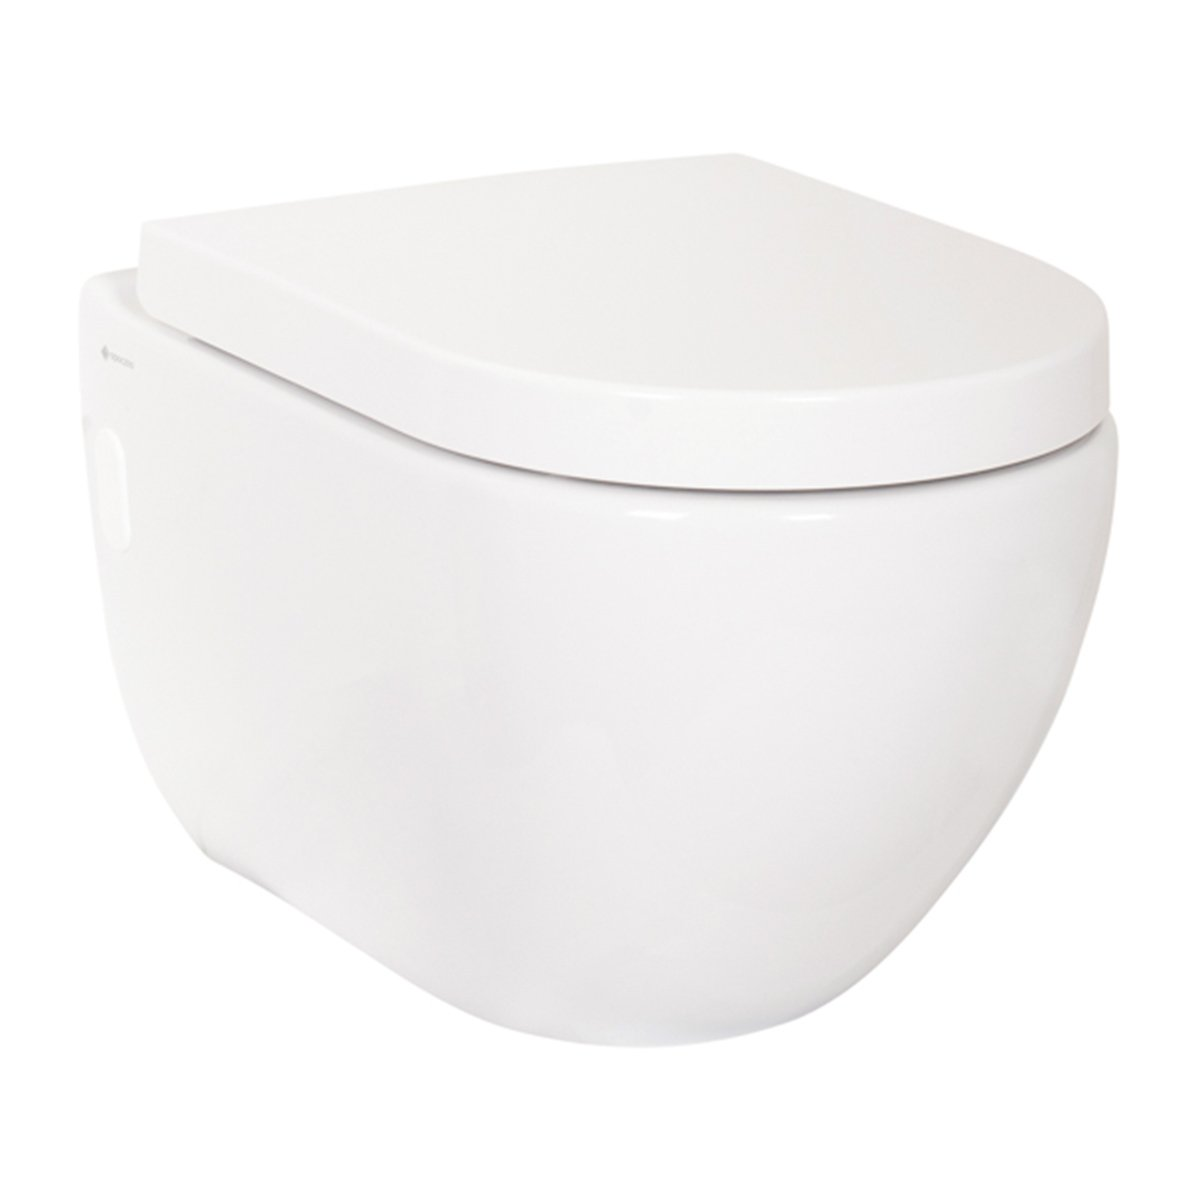 Designer Bathroom Wall Mounted WC Toilet with Soft Close Seat Aquariss